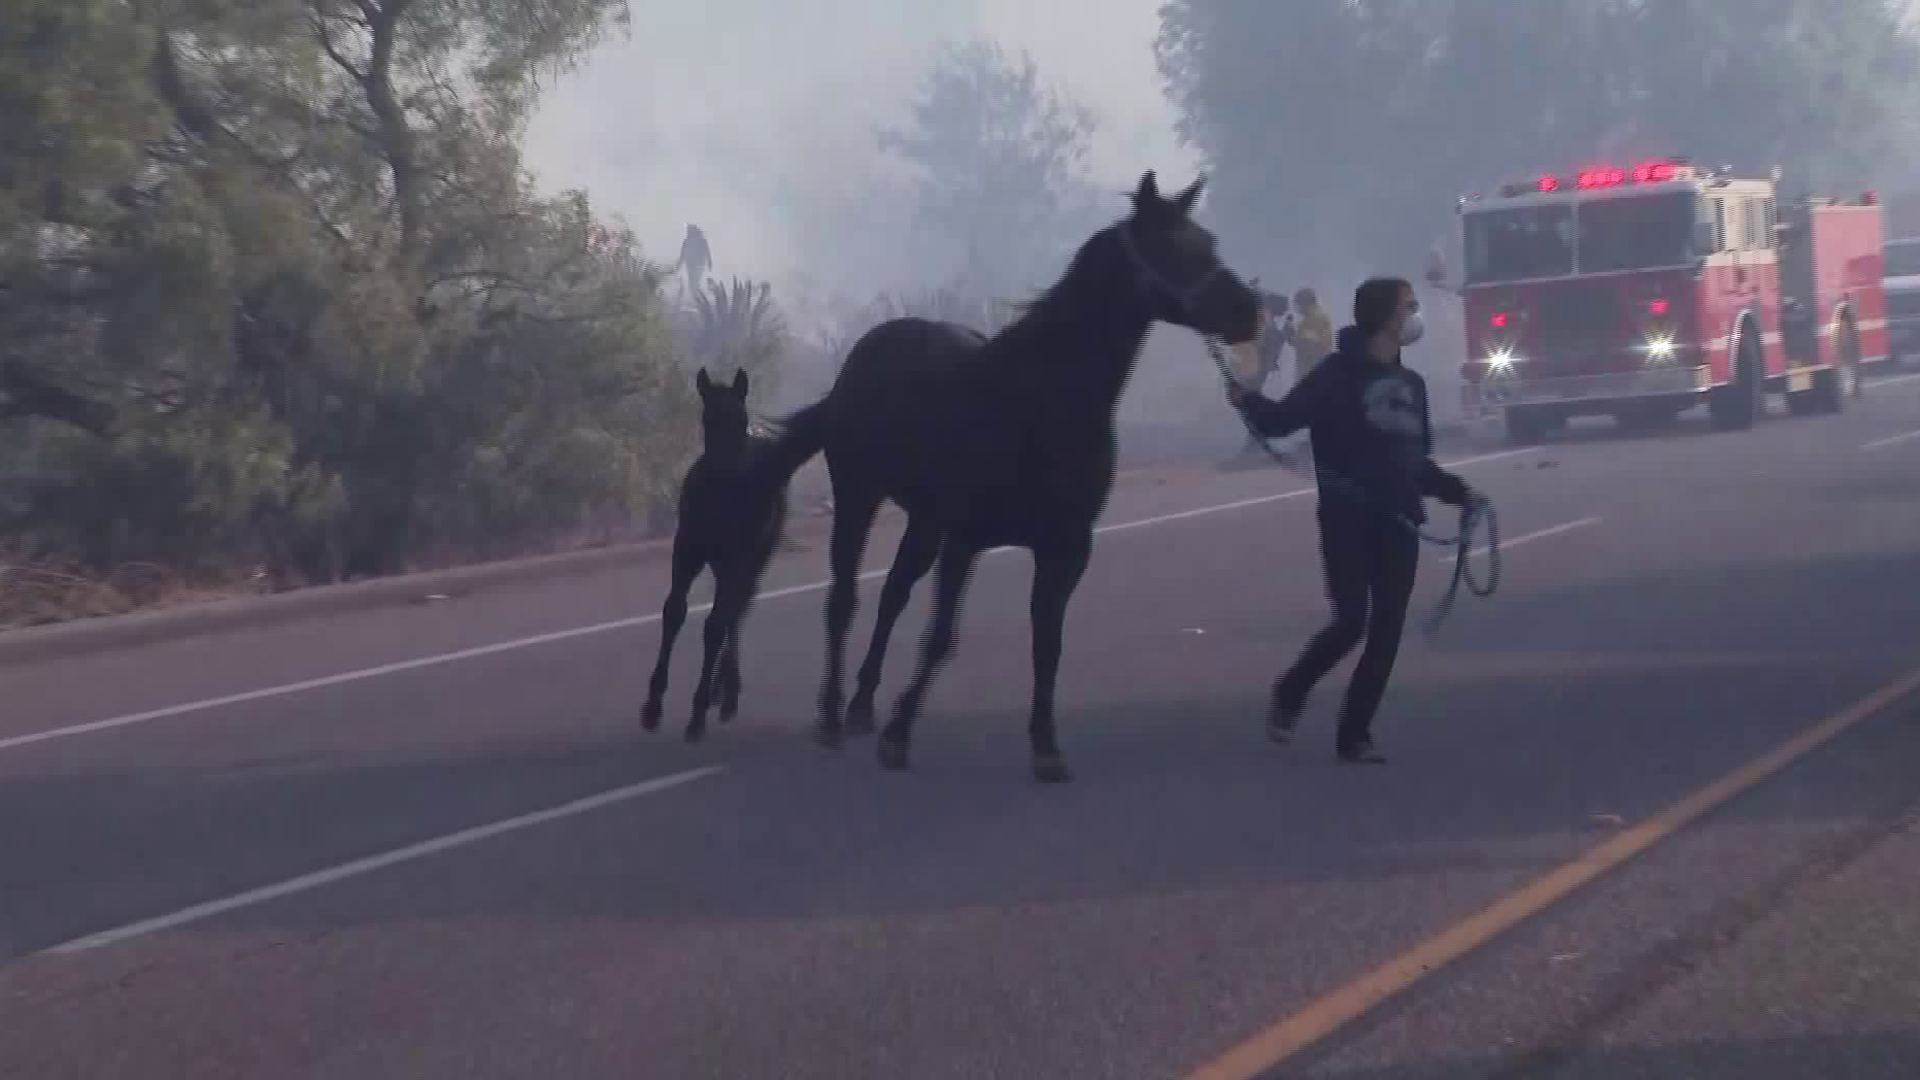 A woman leads two horses into a trailer during the Easy Fire in Simi Valley on Oct. 30, 2019. (Credit: KTLA)